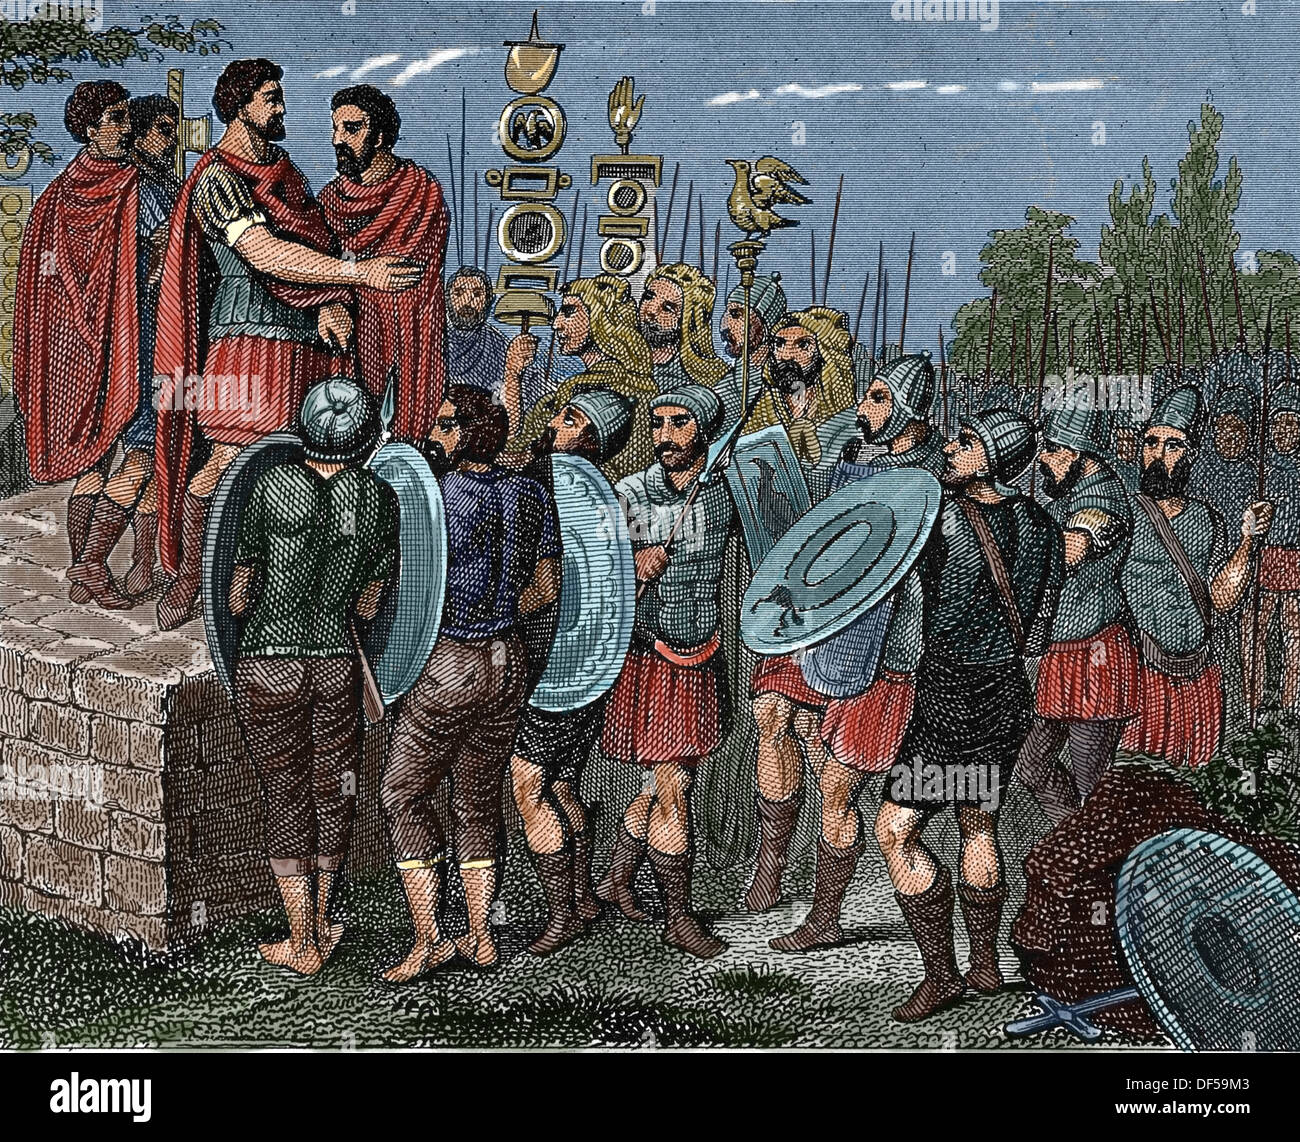 Roman victor thanking the army. Engraving. (Later colouration) - Stock Image